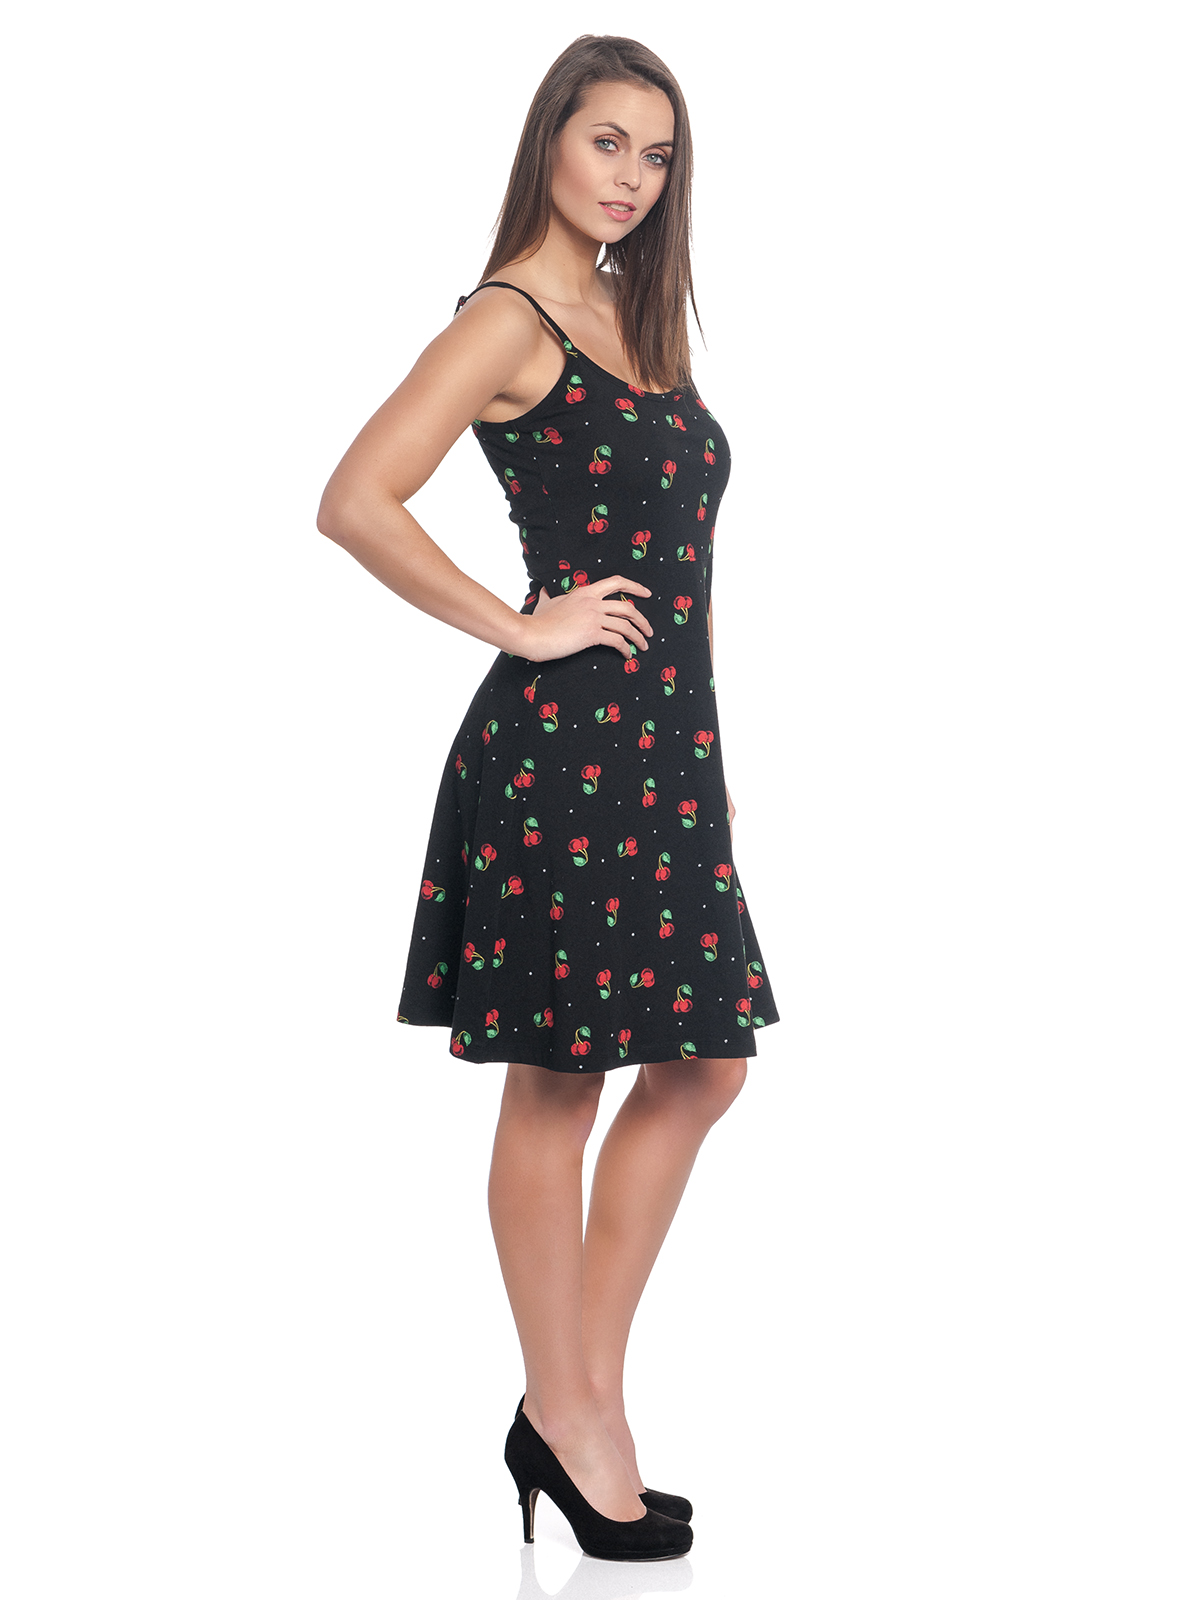 Pussy Deluxe Sweet Cherry Dress Black Allover Pussy Deluxe Dresses